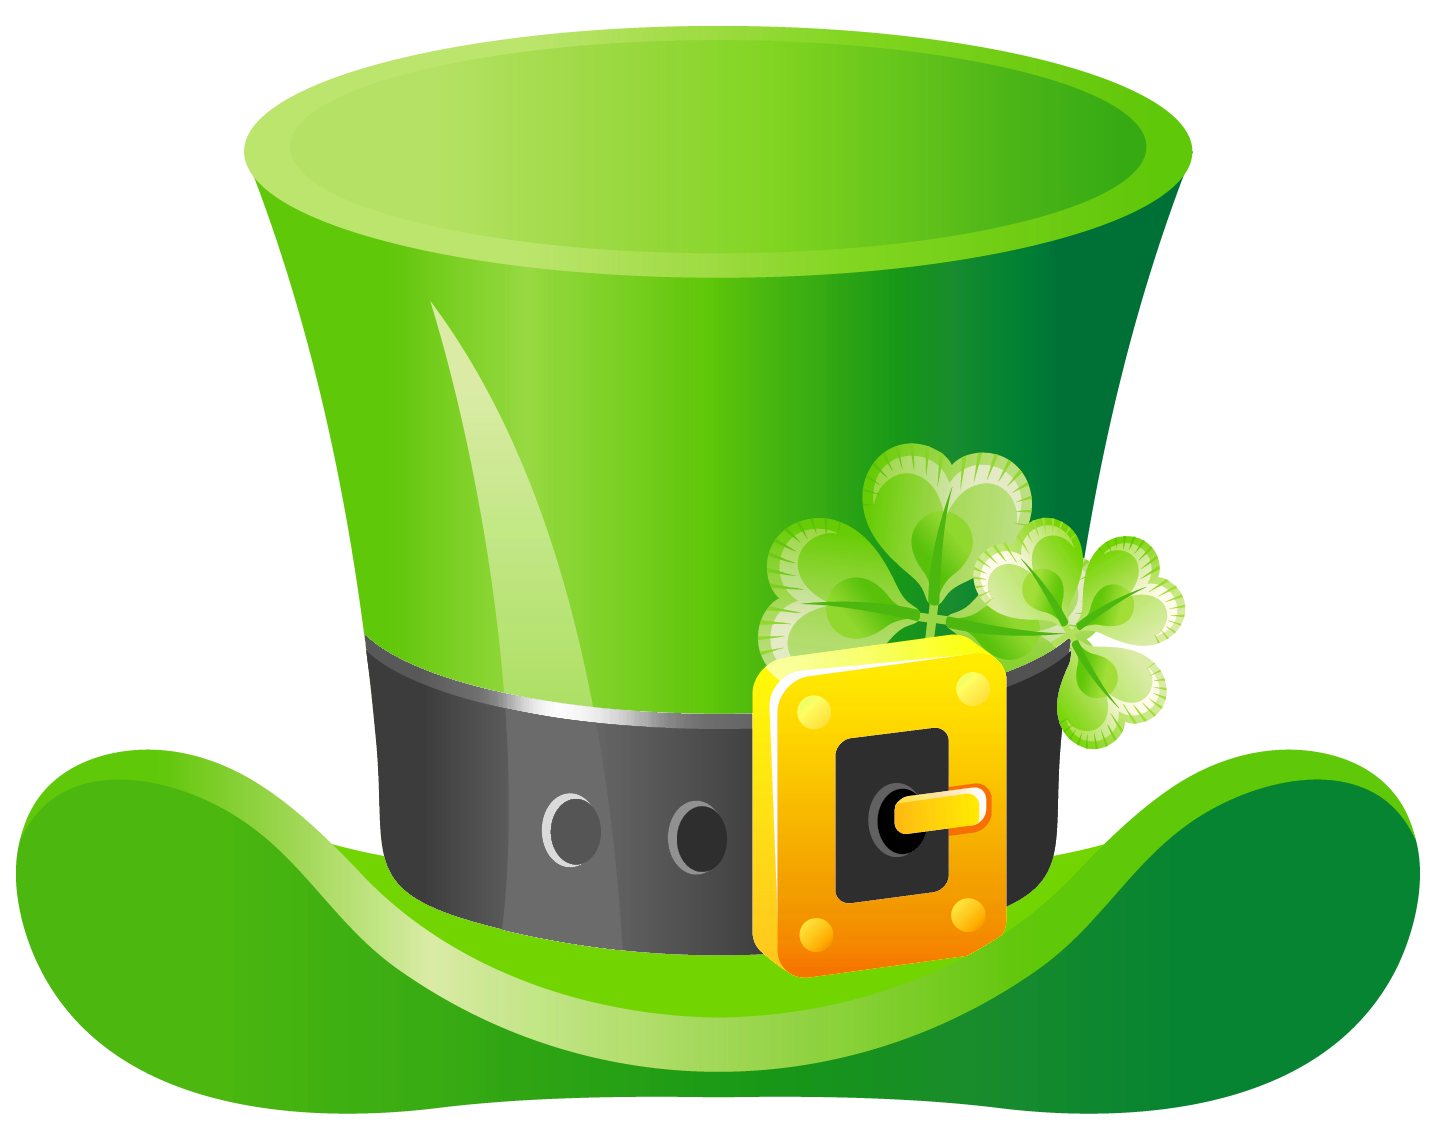 St patricks clipart hat. Love free day patrick